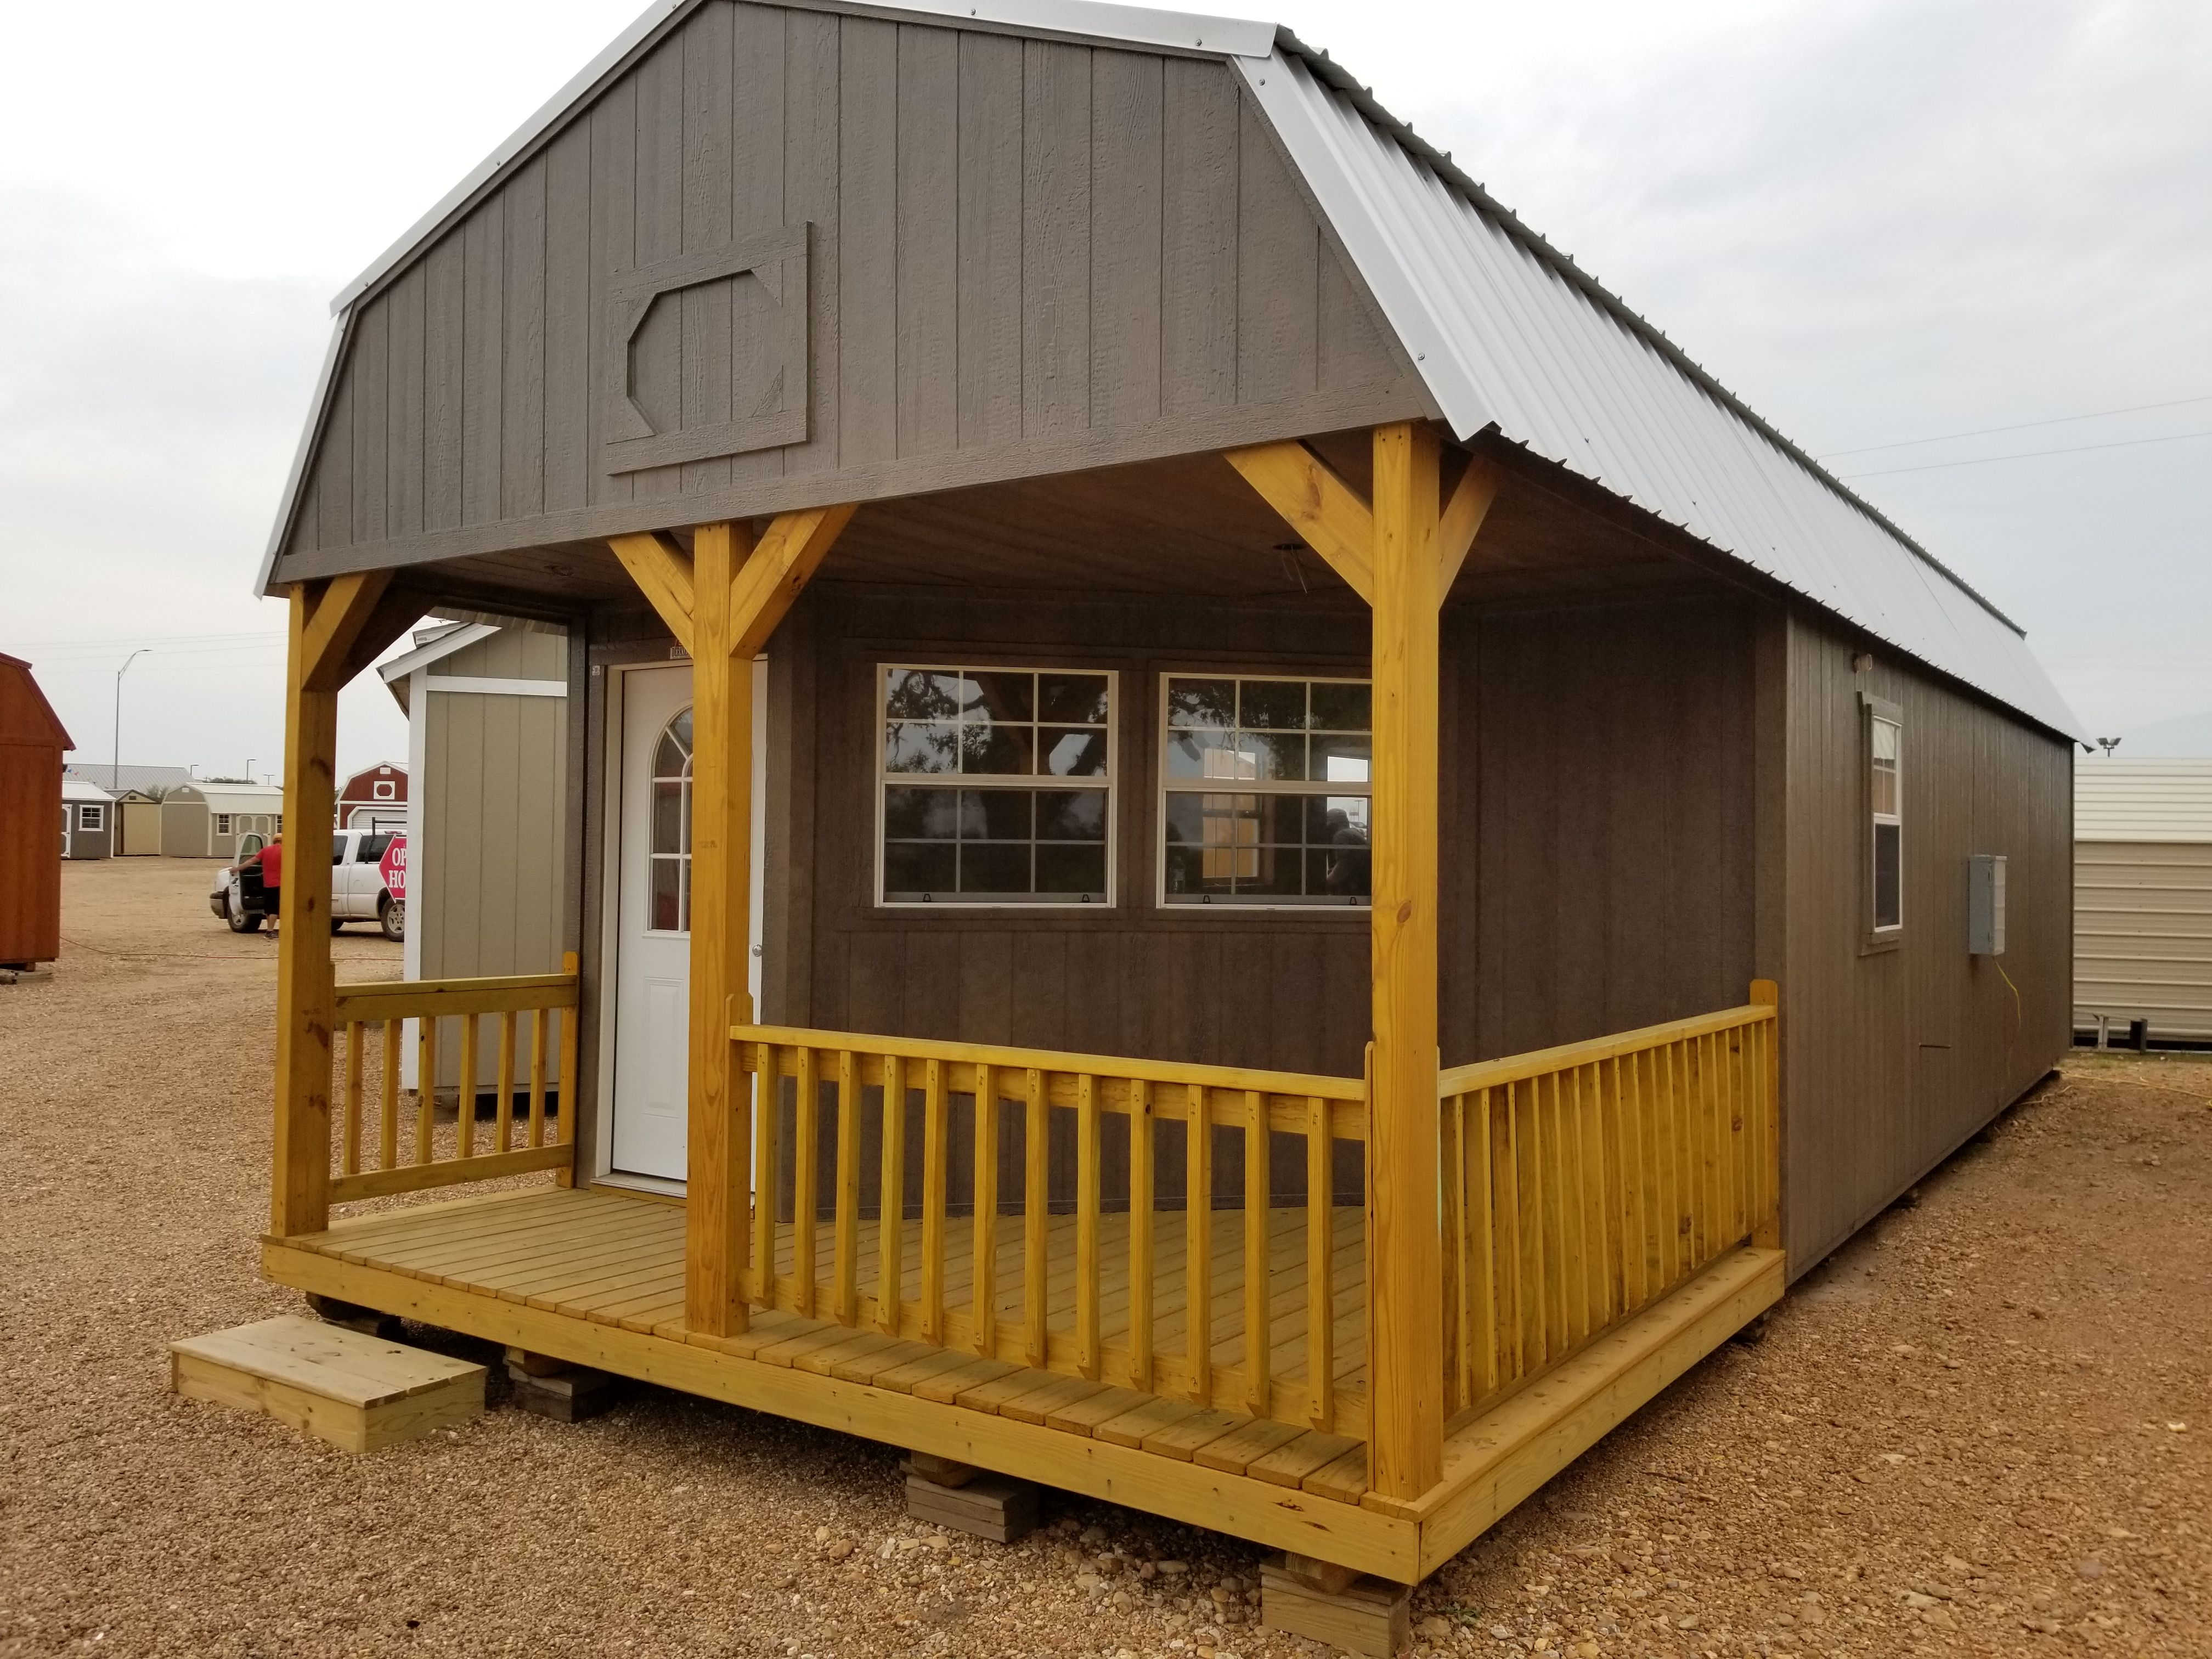 14 X 40 Deluxe Lofted Barn Cabin 560 Sq Ft Includes All Appliances And You Can Customize All Finishes Lofted Barn Cabin Tiny House Design Cabin